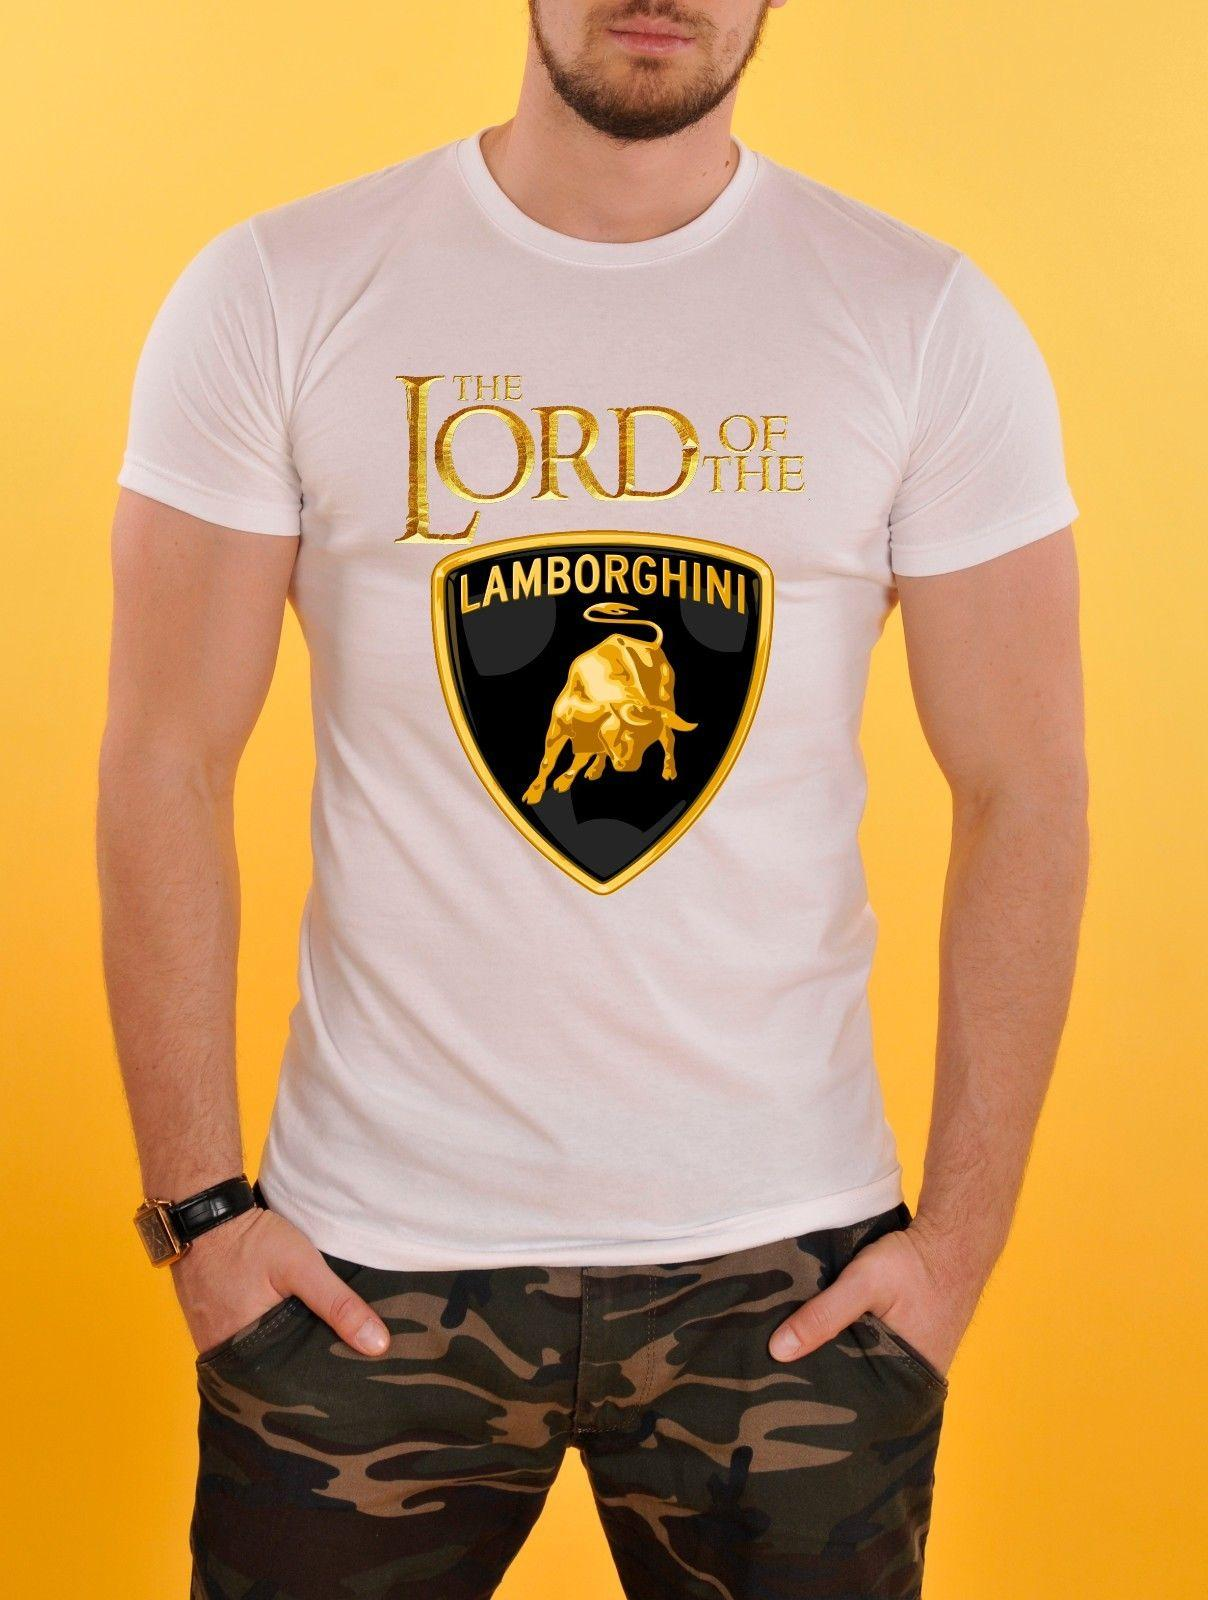 Wonderful The Lord Of The Lamborghini Logo Cars T Shirt White New Tee Shirt Site  Online Buy T Shirt From Sportswearing, $11.01| Dhgate.Com